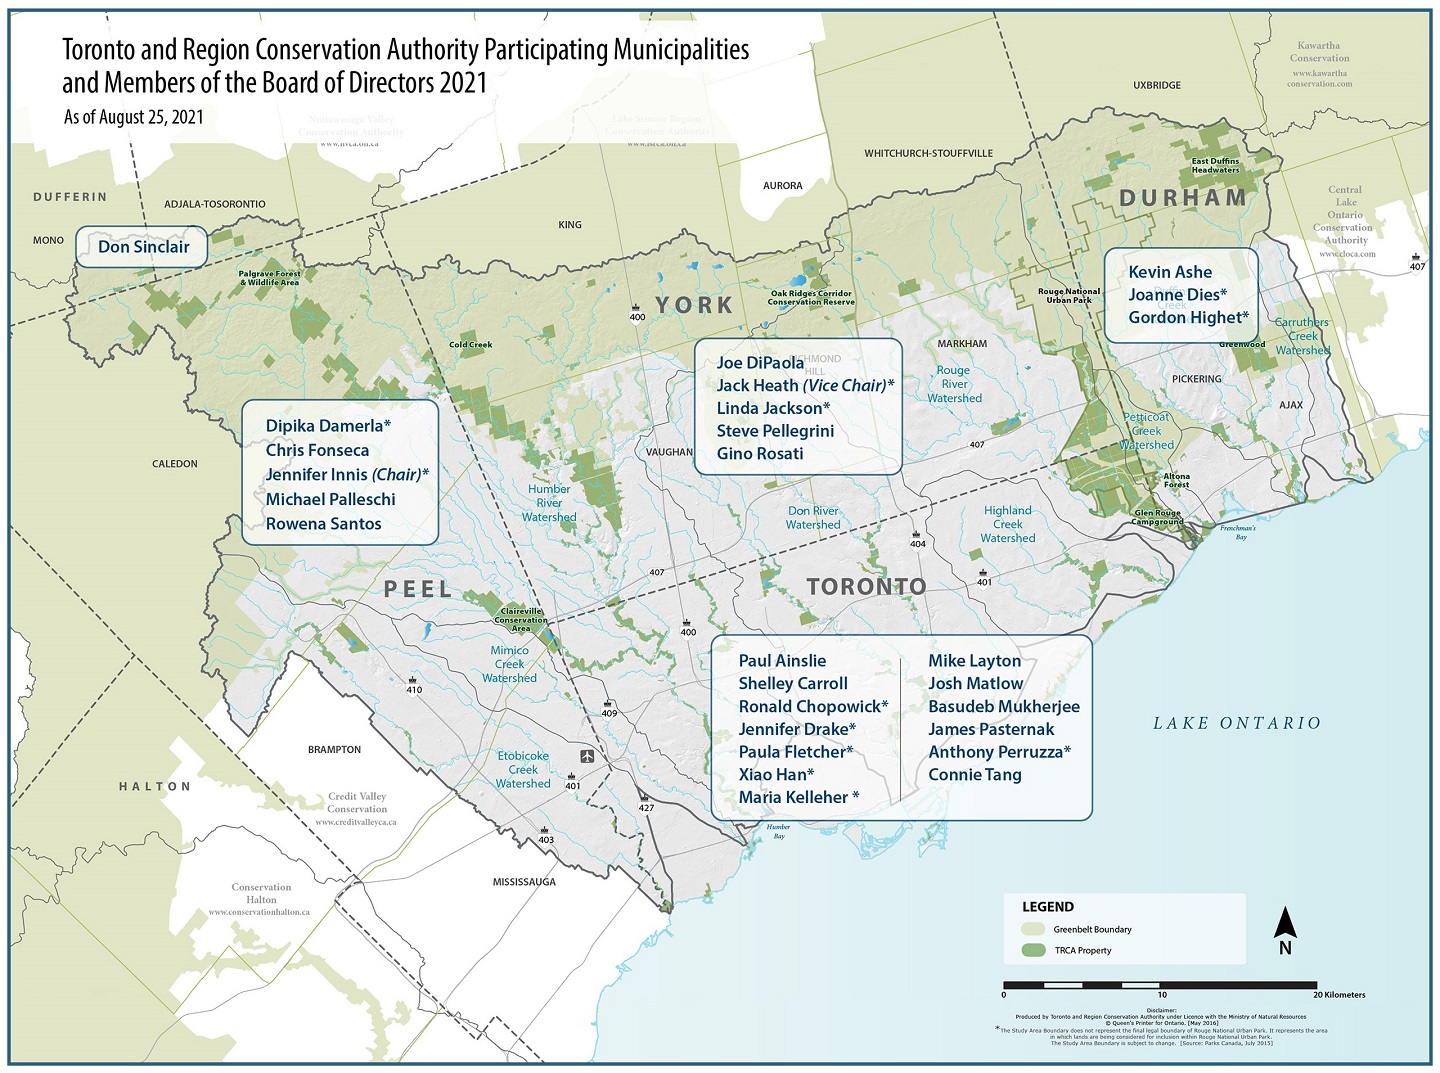 map displaying TRCA participating municipalities and board members by region